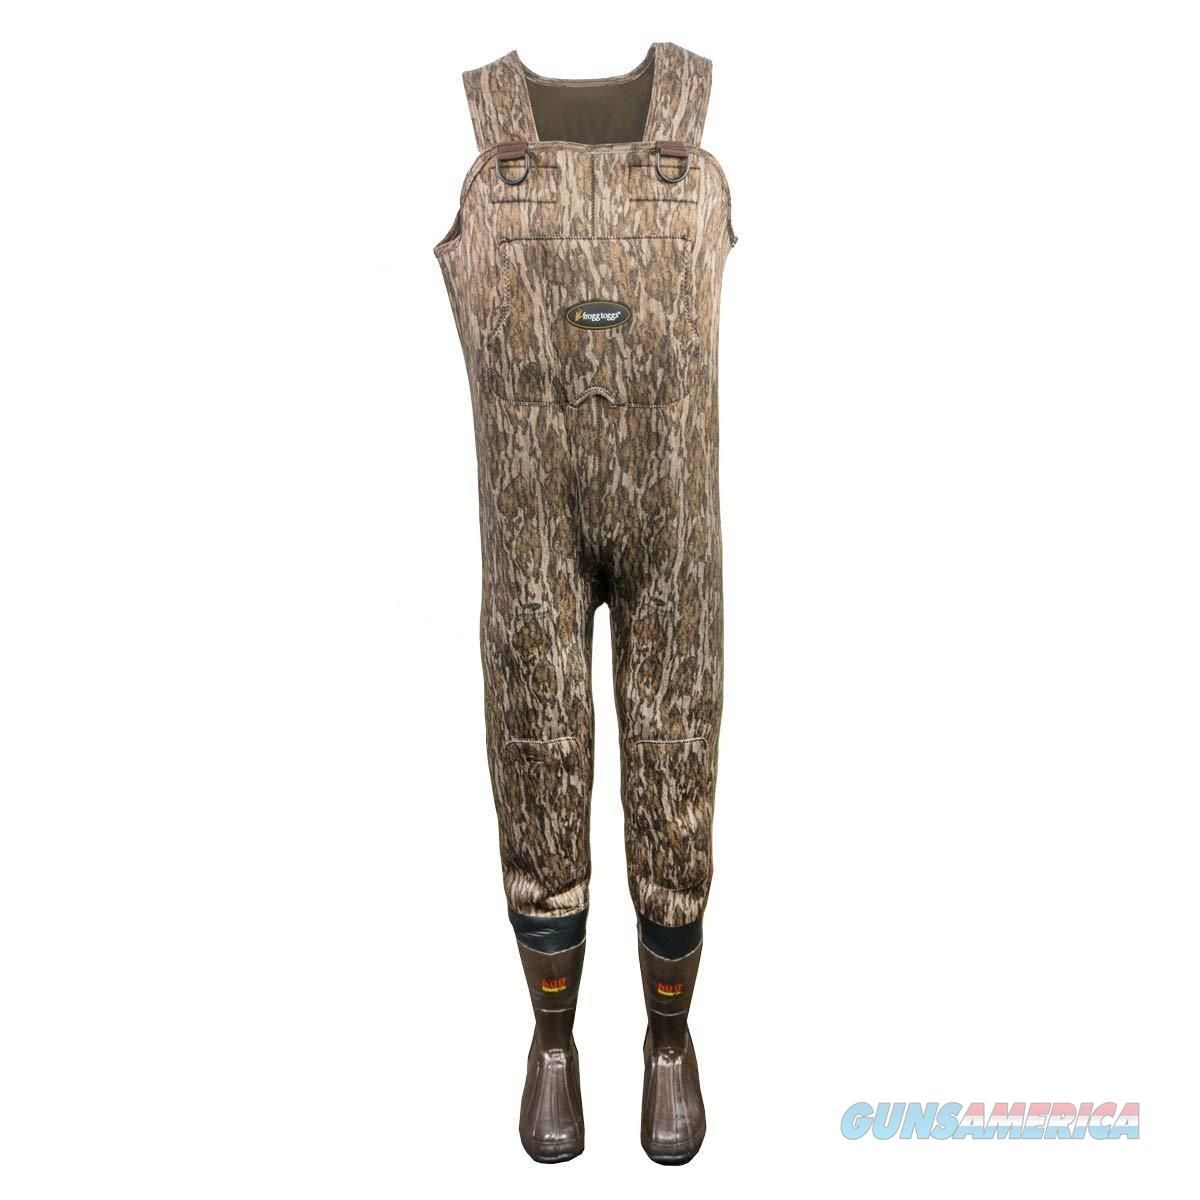 Frogg Toggs Chest Waders Bottomland Size 11  Non-Guns > Hunting Clothing and Equipment > Clothing > Camo Outerwear